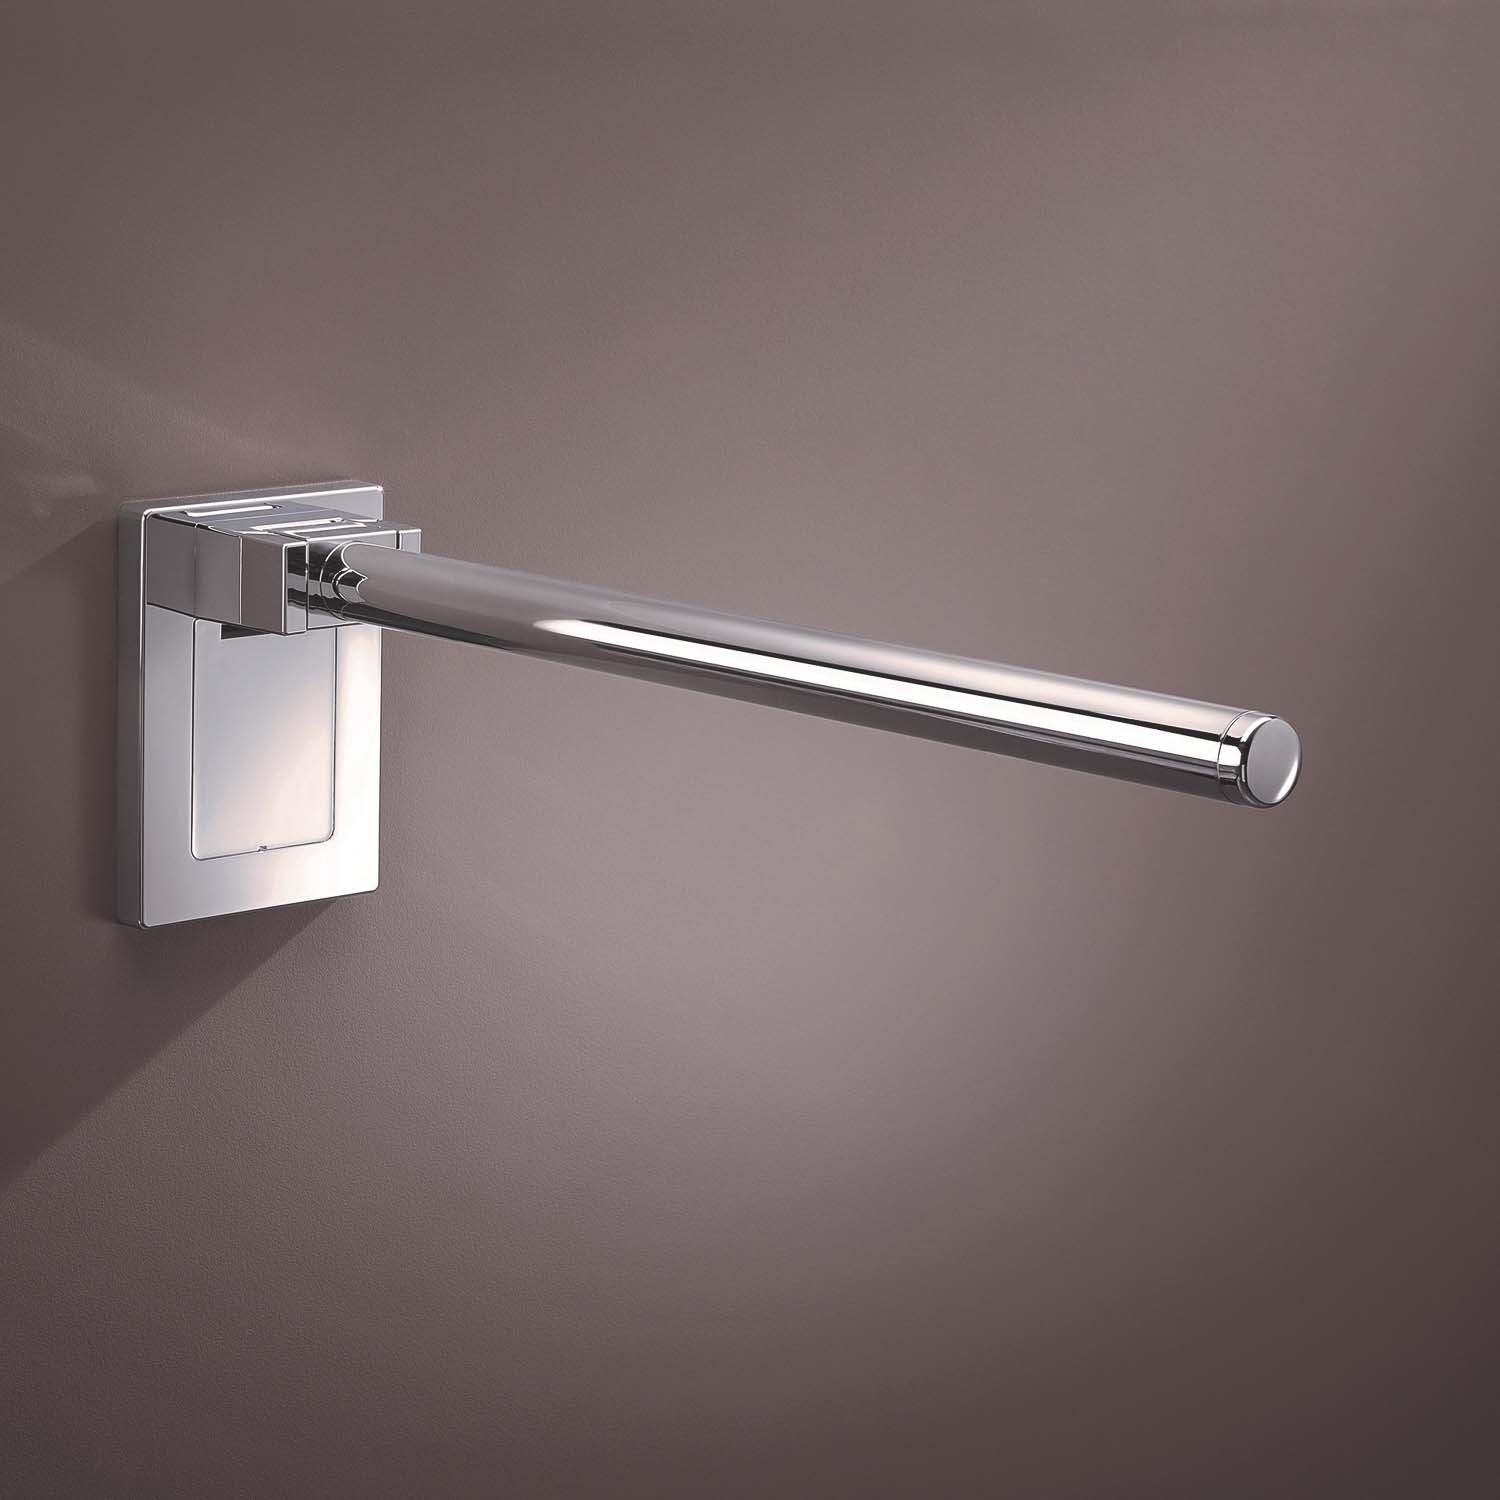 700mm Circula Hinged Grab Rail with a chrome-look finish lifestyle image